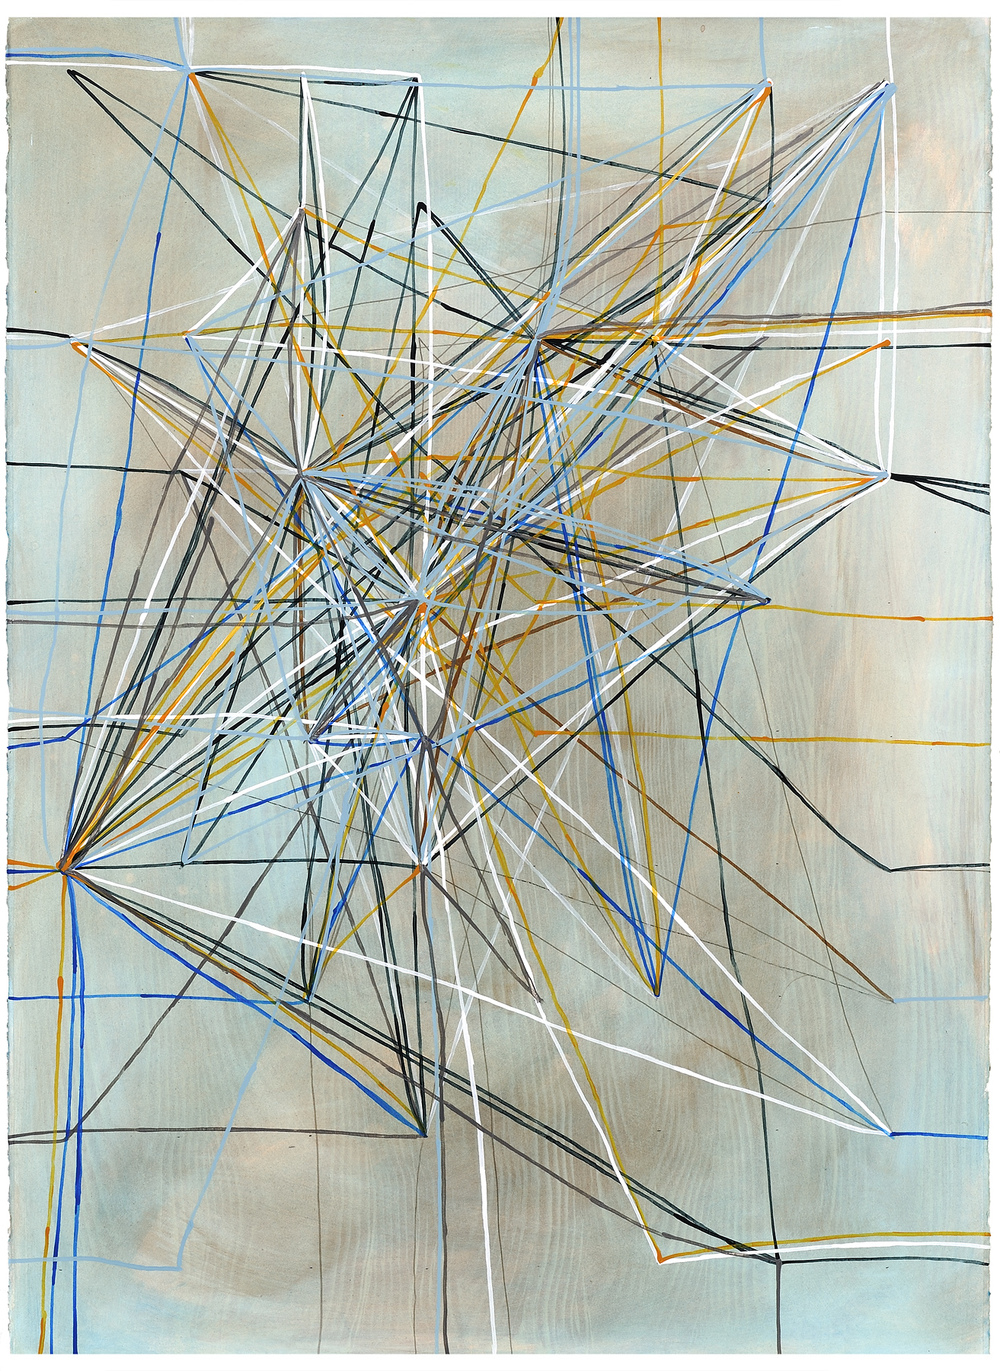 RFJP Chicago Metro Pink Blue Lines, 2014, acrylic and phosphorescent acrylic on paper, 41 x 29 inches